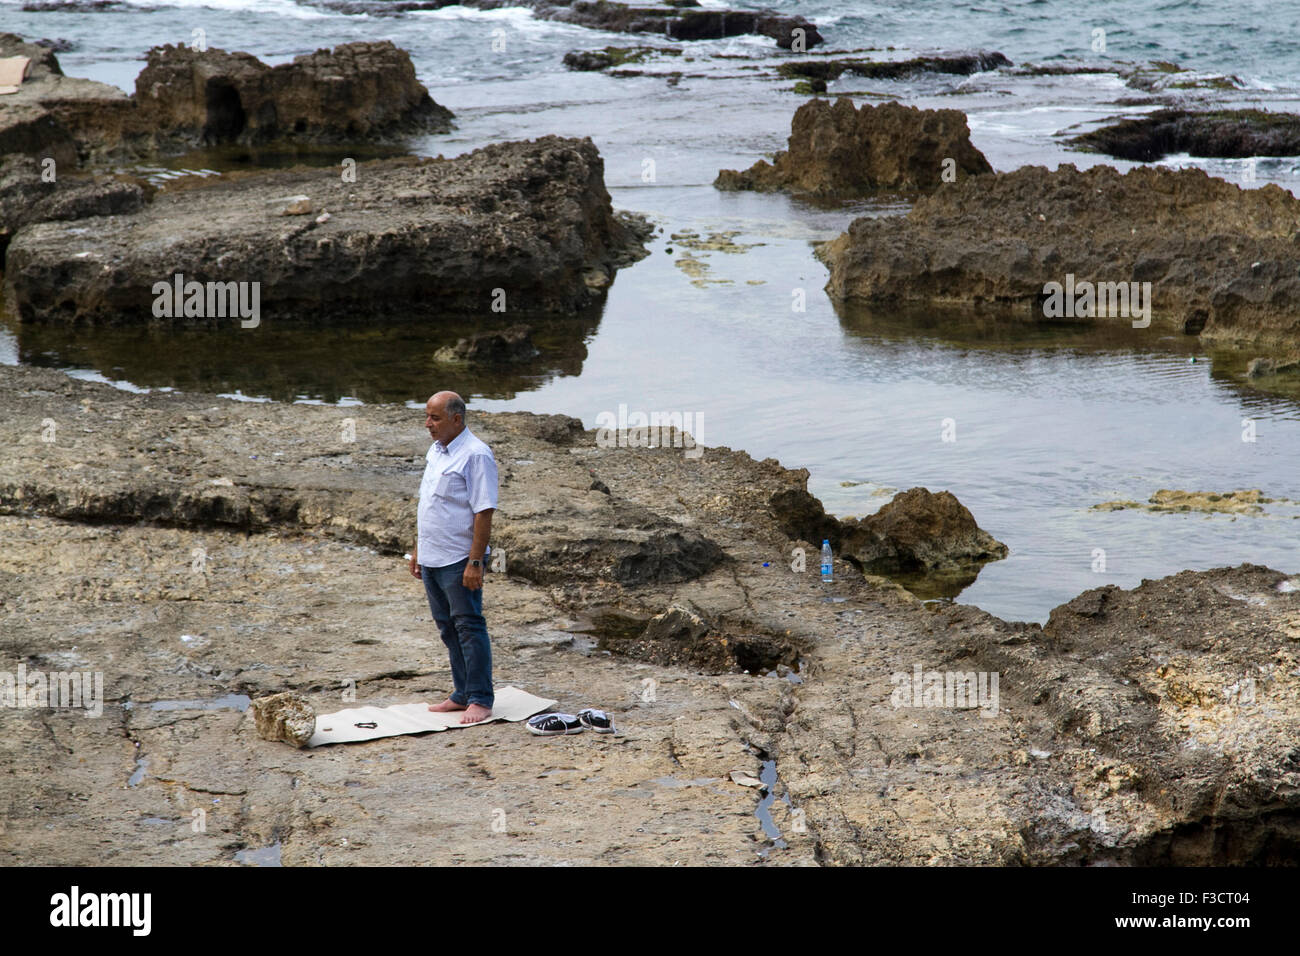 Beirut Lebanon 2015. Oct 2015. A man finds a spot on  the coastal rocks  off the Beirut shore to perform the  Islamic Stock Photo